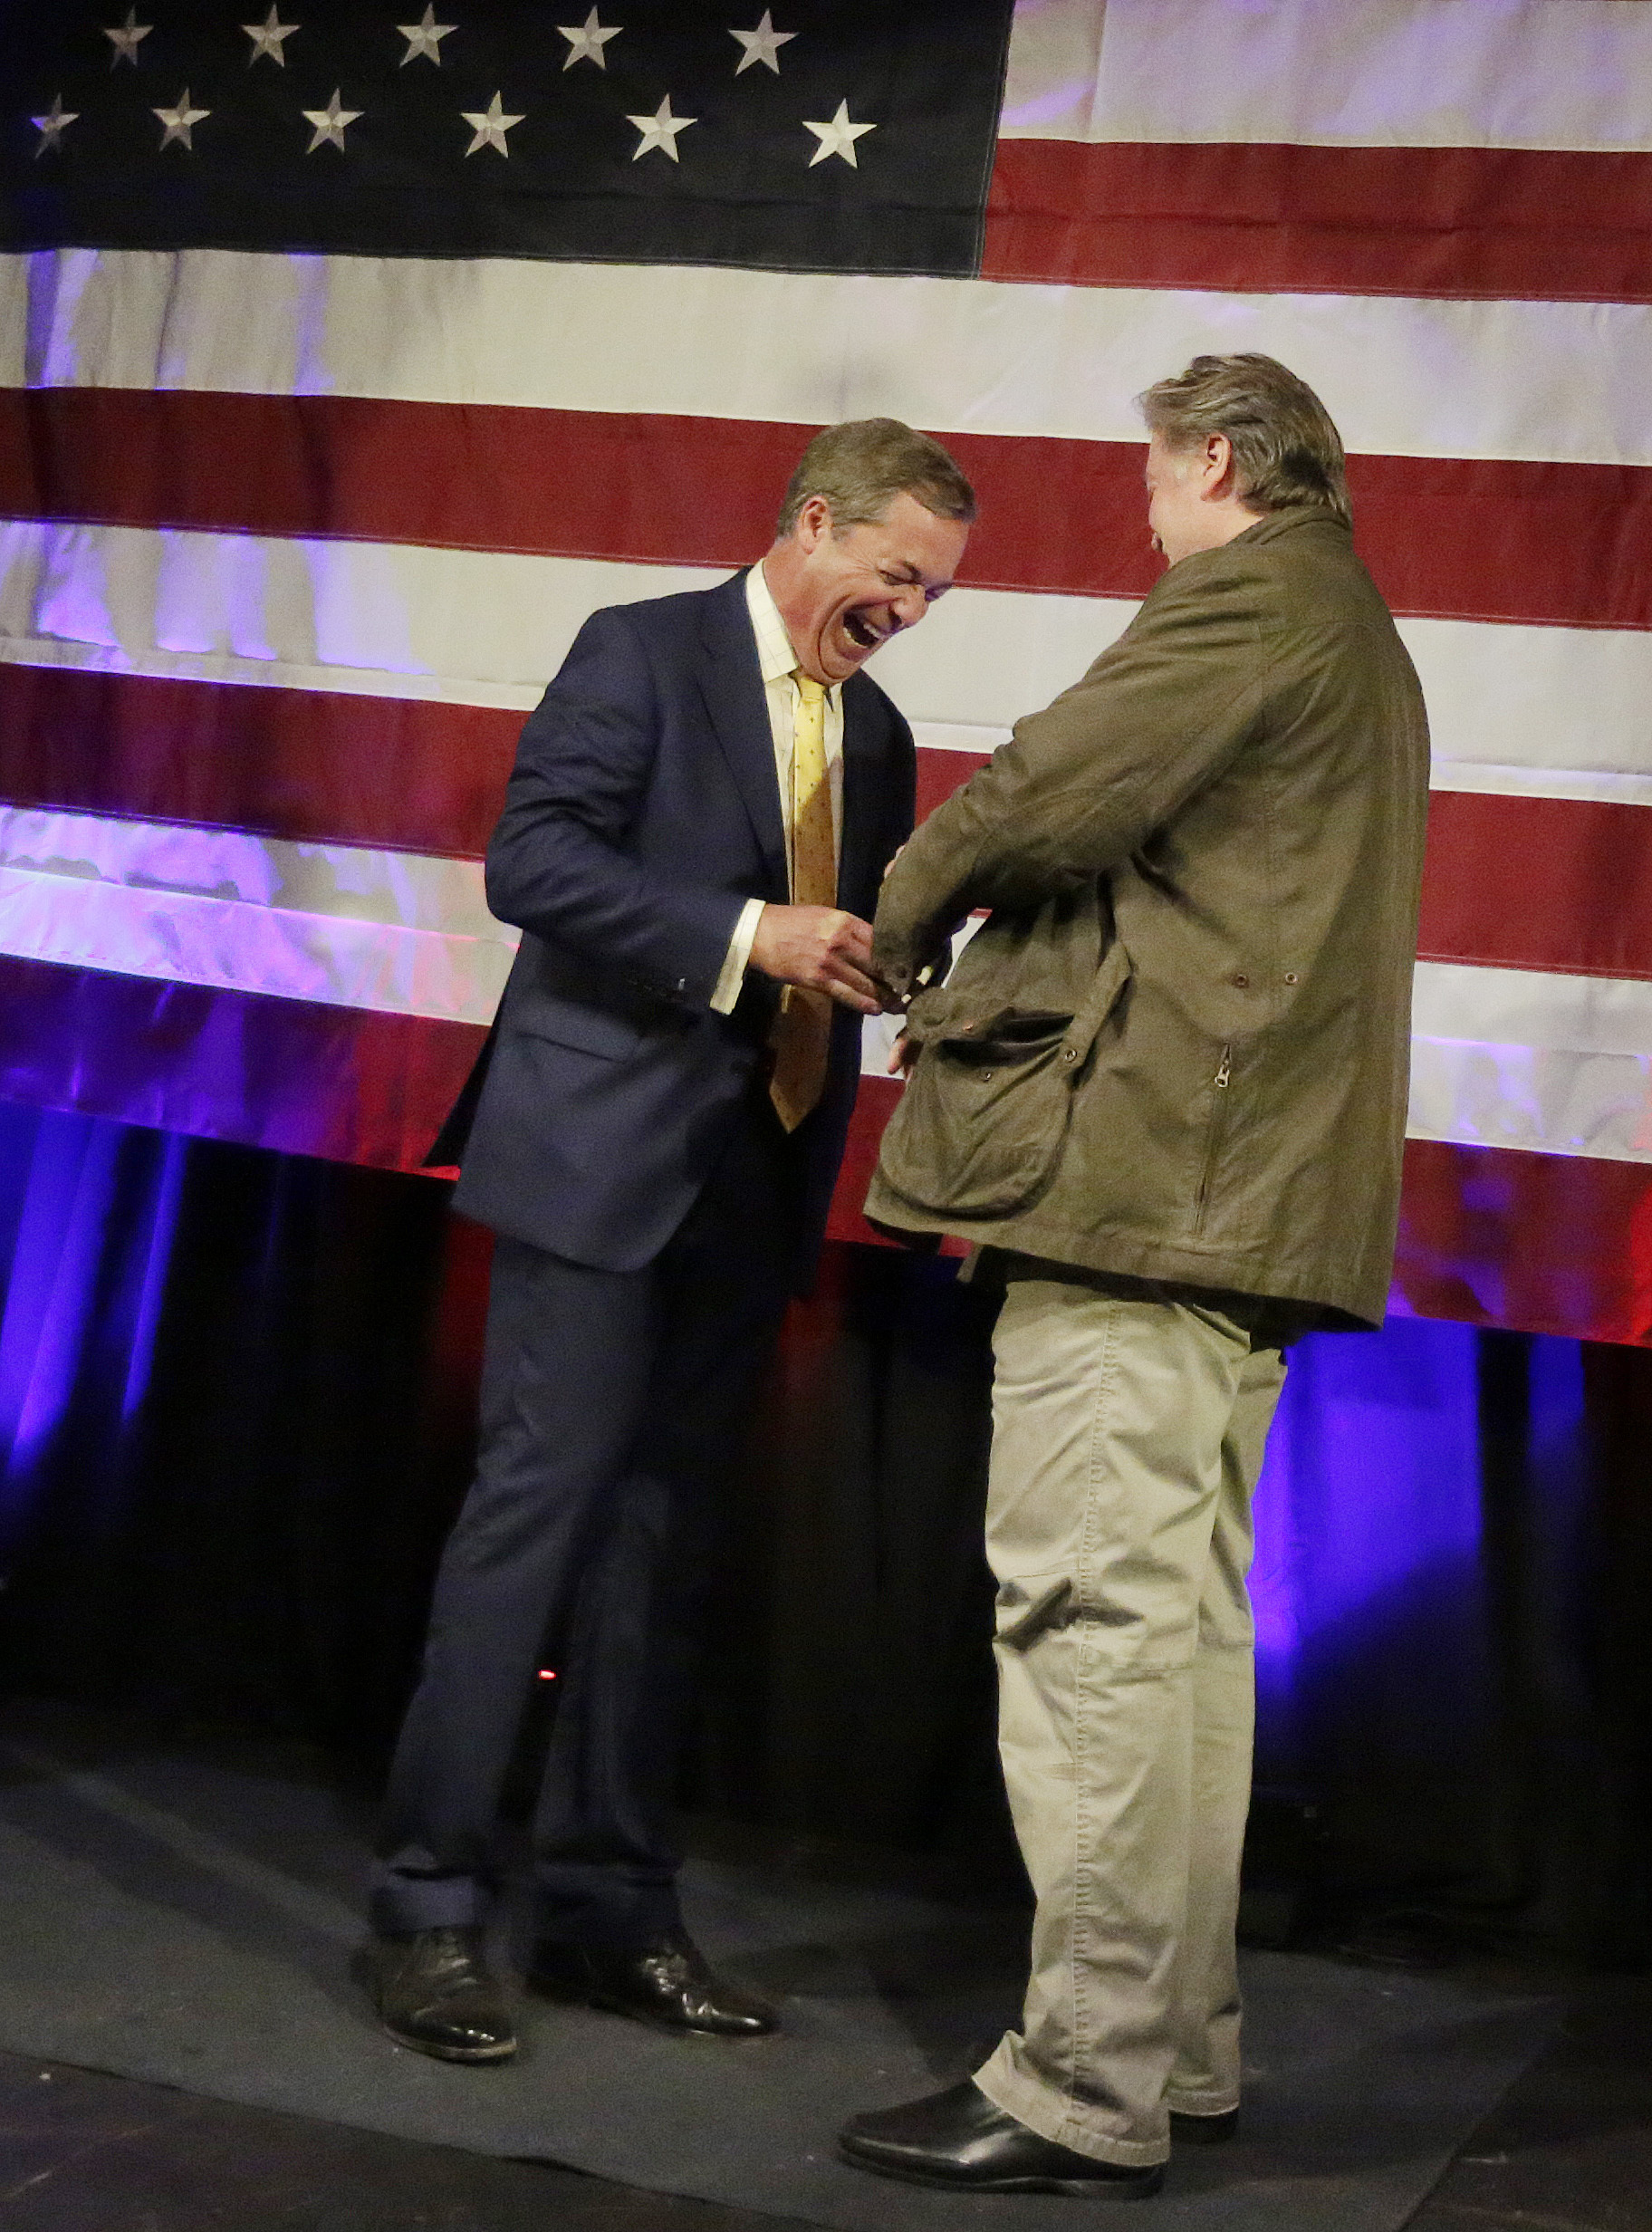 British politician Nigel Farage, left, and former White House strategist Steve Bannon, right, shown during a rally for U.S. Senate hopeful Roy Moore, Monday, Sept. 25, 2017, in Fairhope, Ala. (AP Photo/Brynn Anderson)